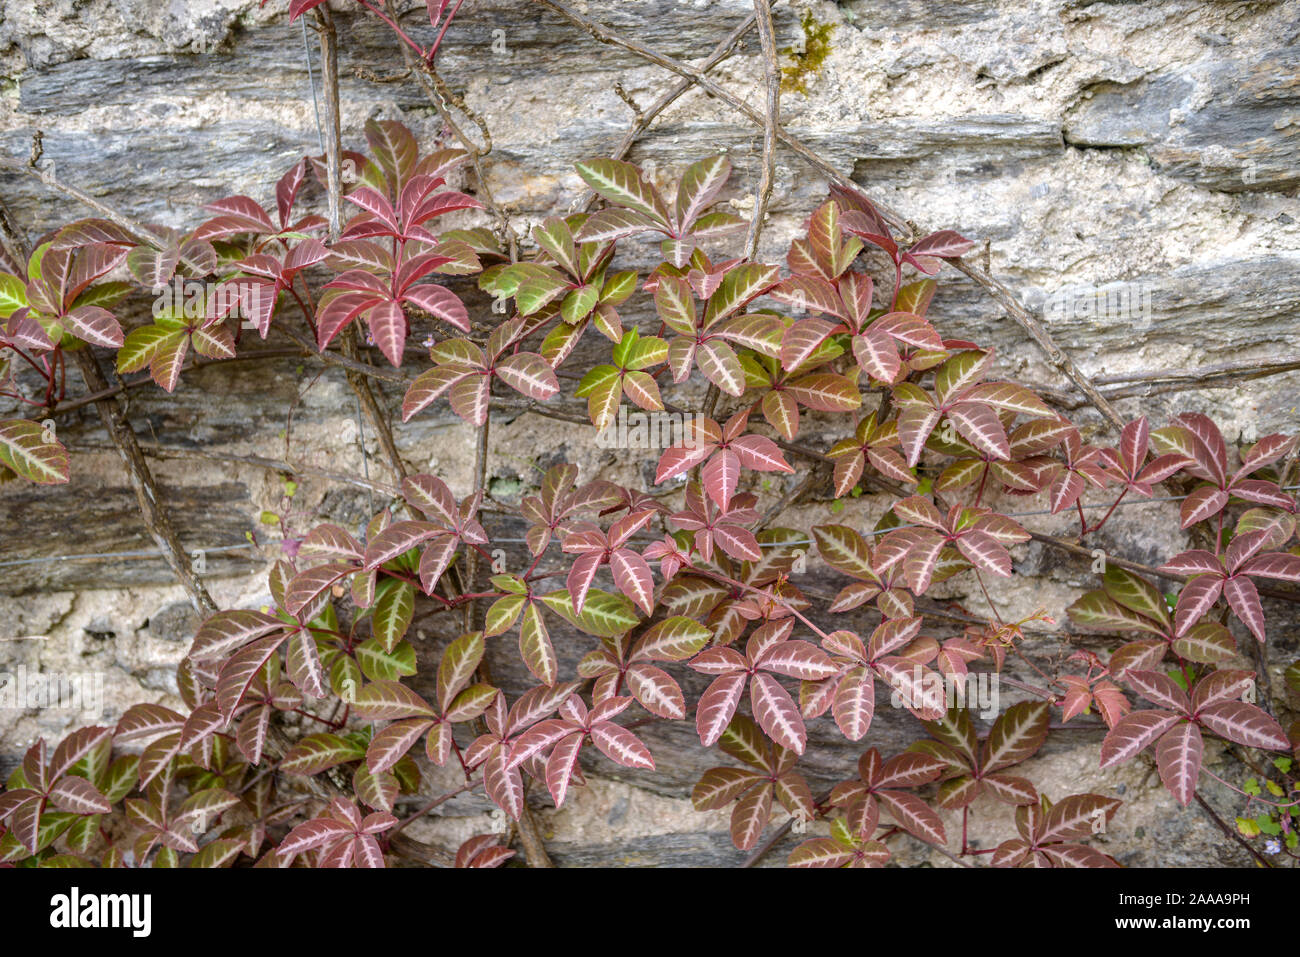 Blue Fruits Silvery Veins on Leaves Chinese Virginia Creeper or SILVERVEIN Creeper Parthenocissus henryana Climber Autumn Colours